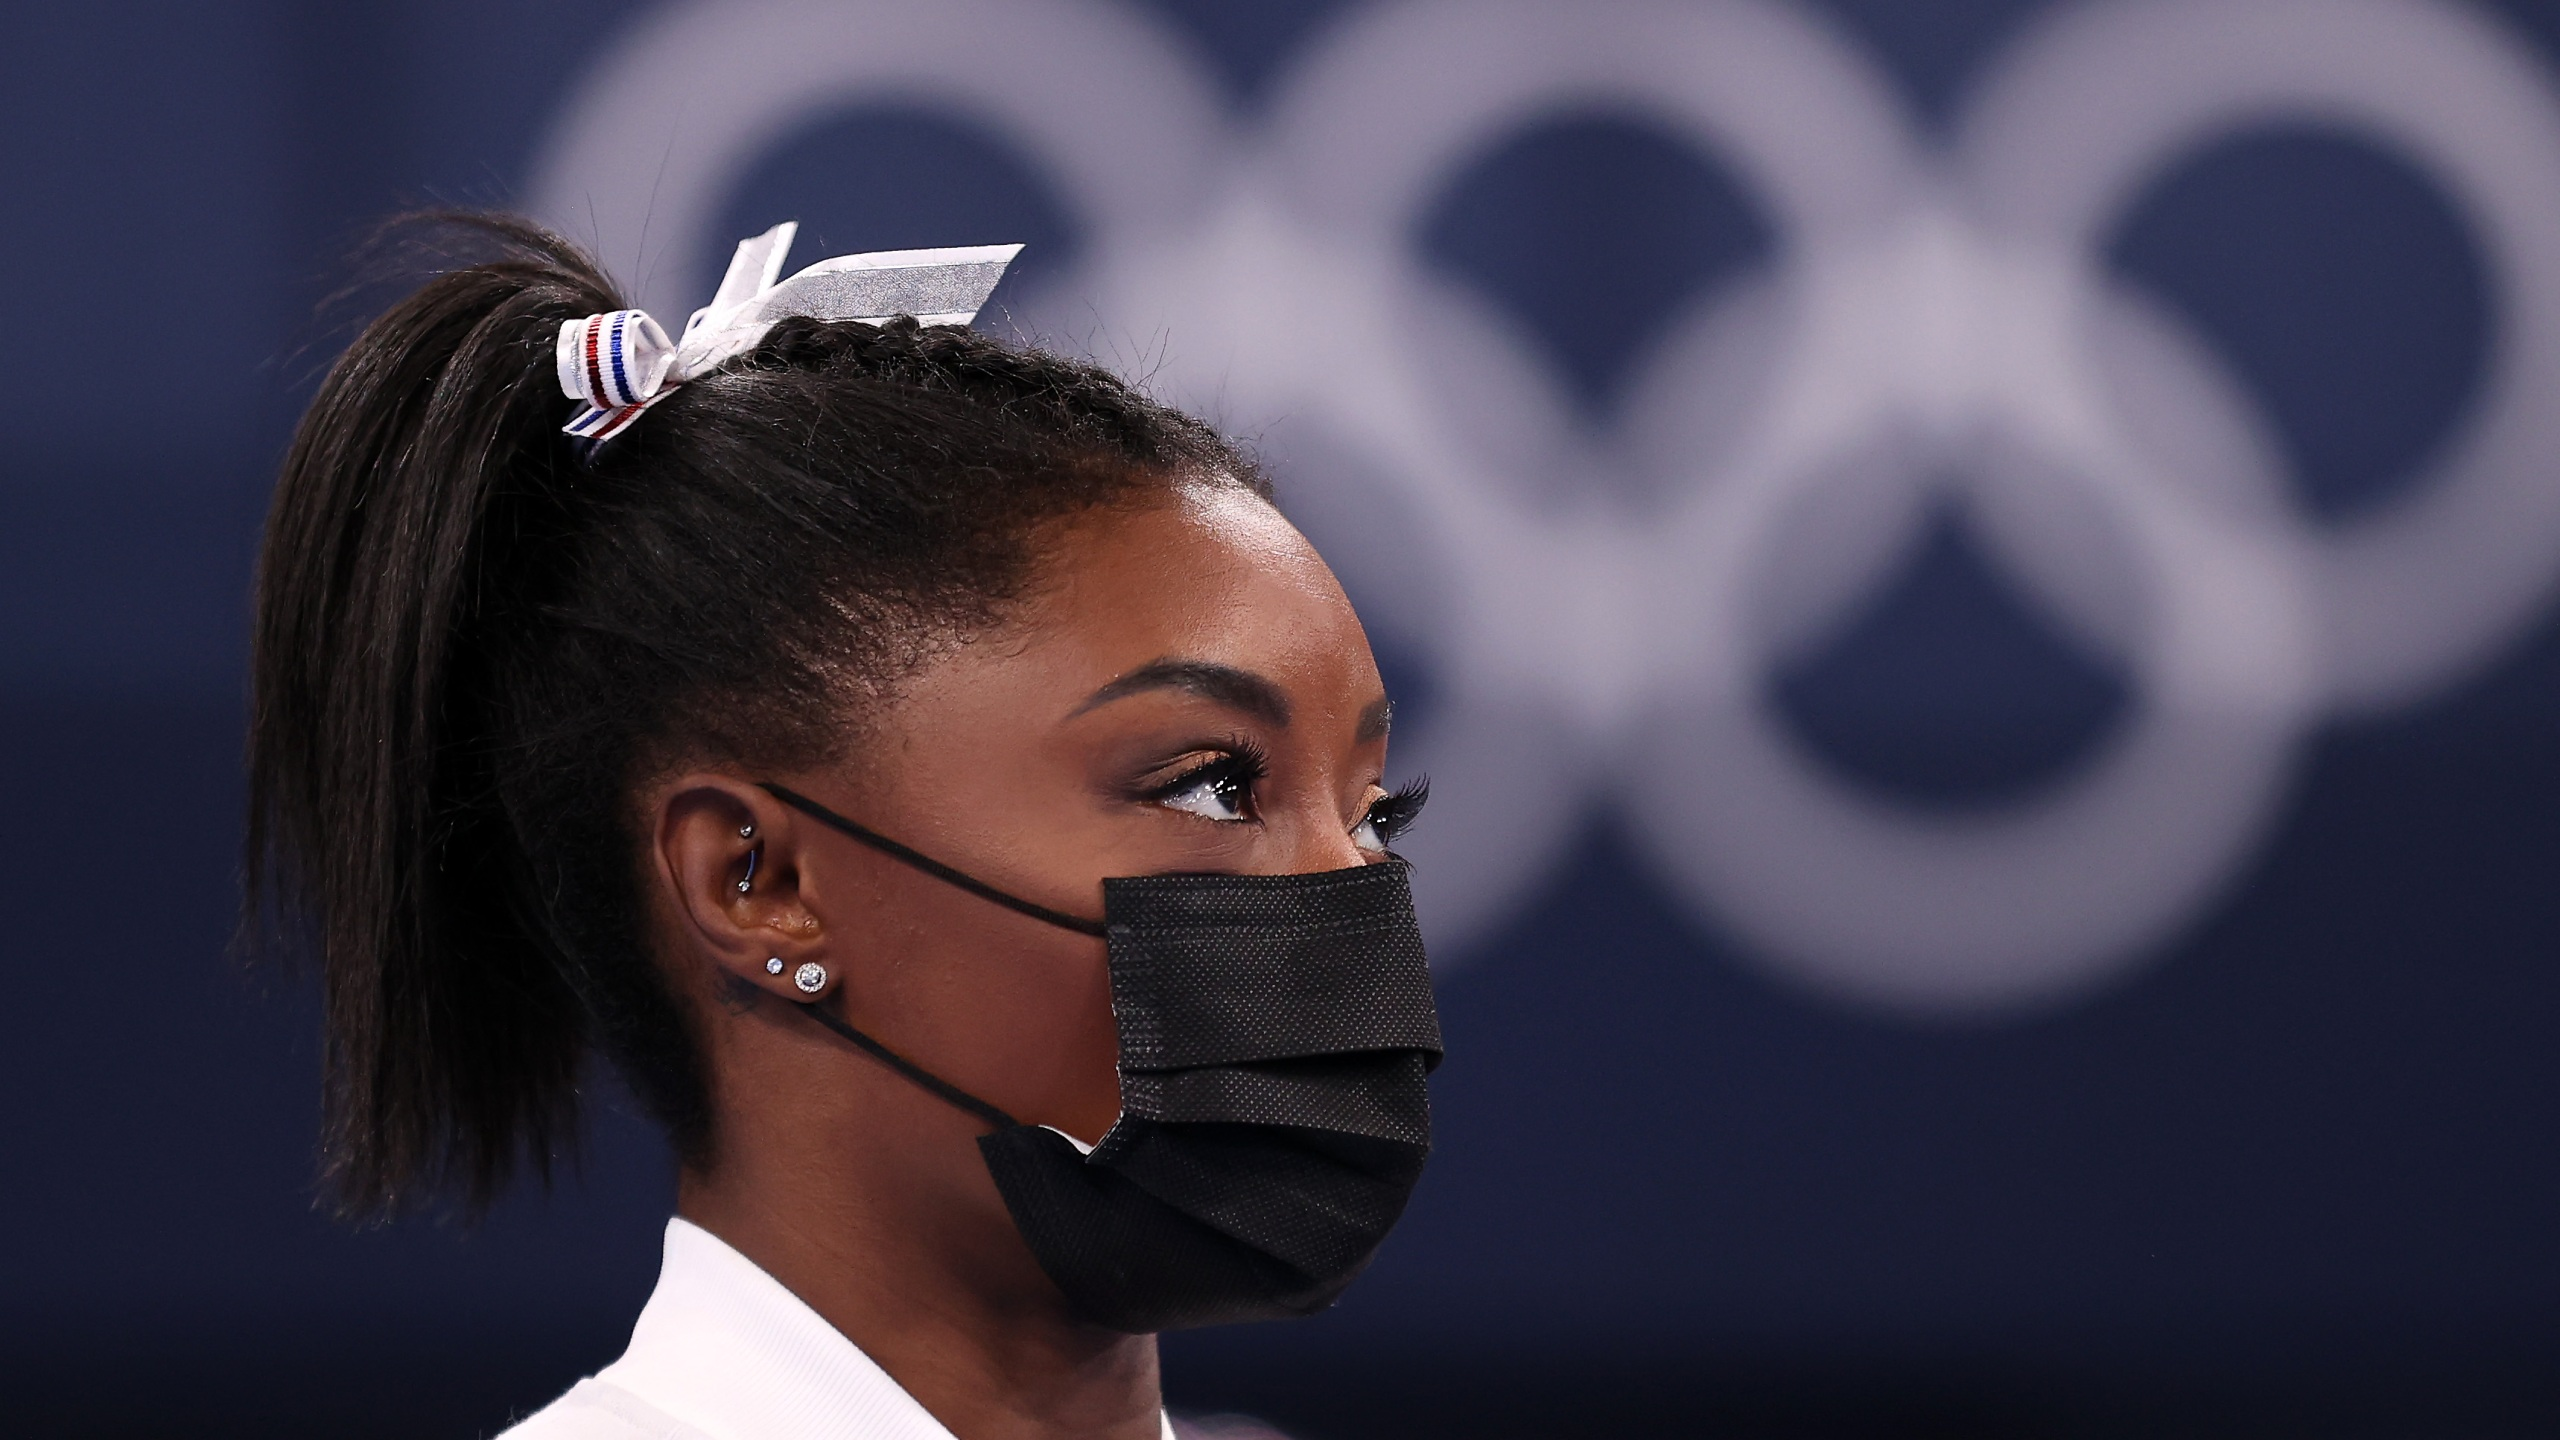 Simone Biles of Team United States watches her team perform on bars after pulling out of the competition after only competing on the vault during the Women's Team Final on day four on day four of the Tokyo 2020 Olympic Games at Ariake Gymnastics Centre on July 27, 2021, in Tokyo, Japan.(Laurence Griffiths/Getty Images)